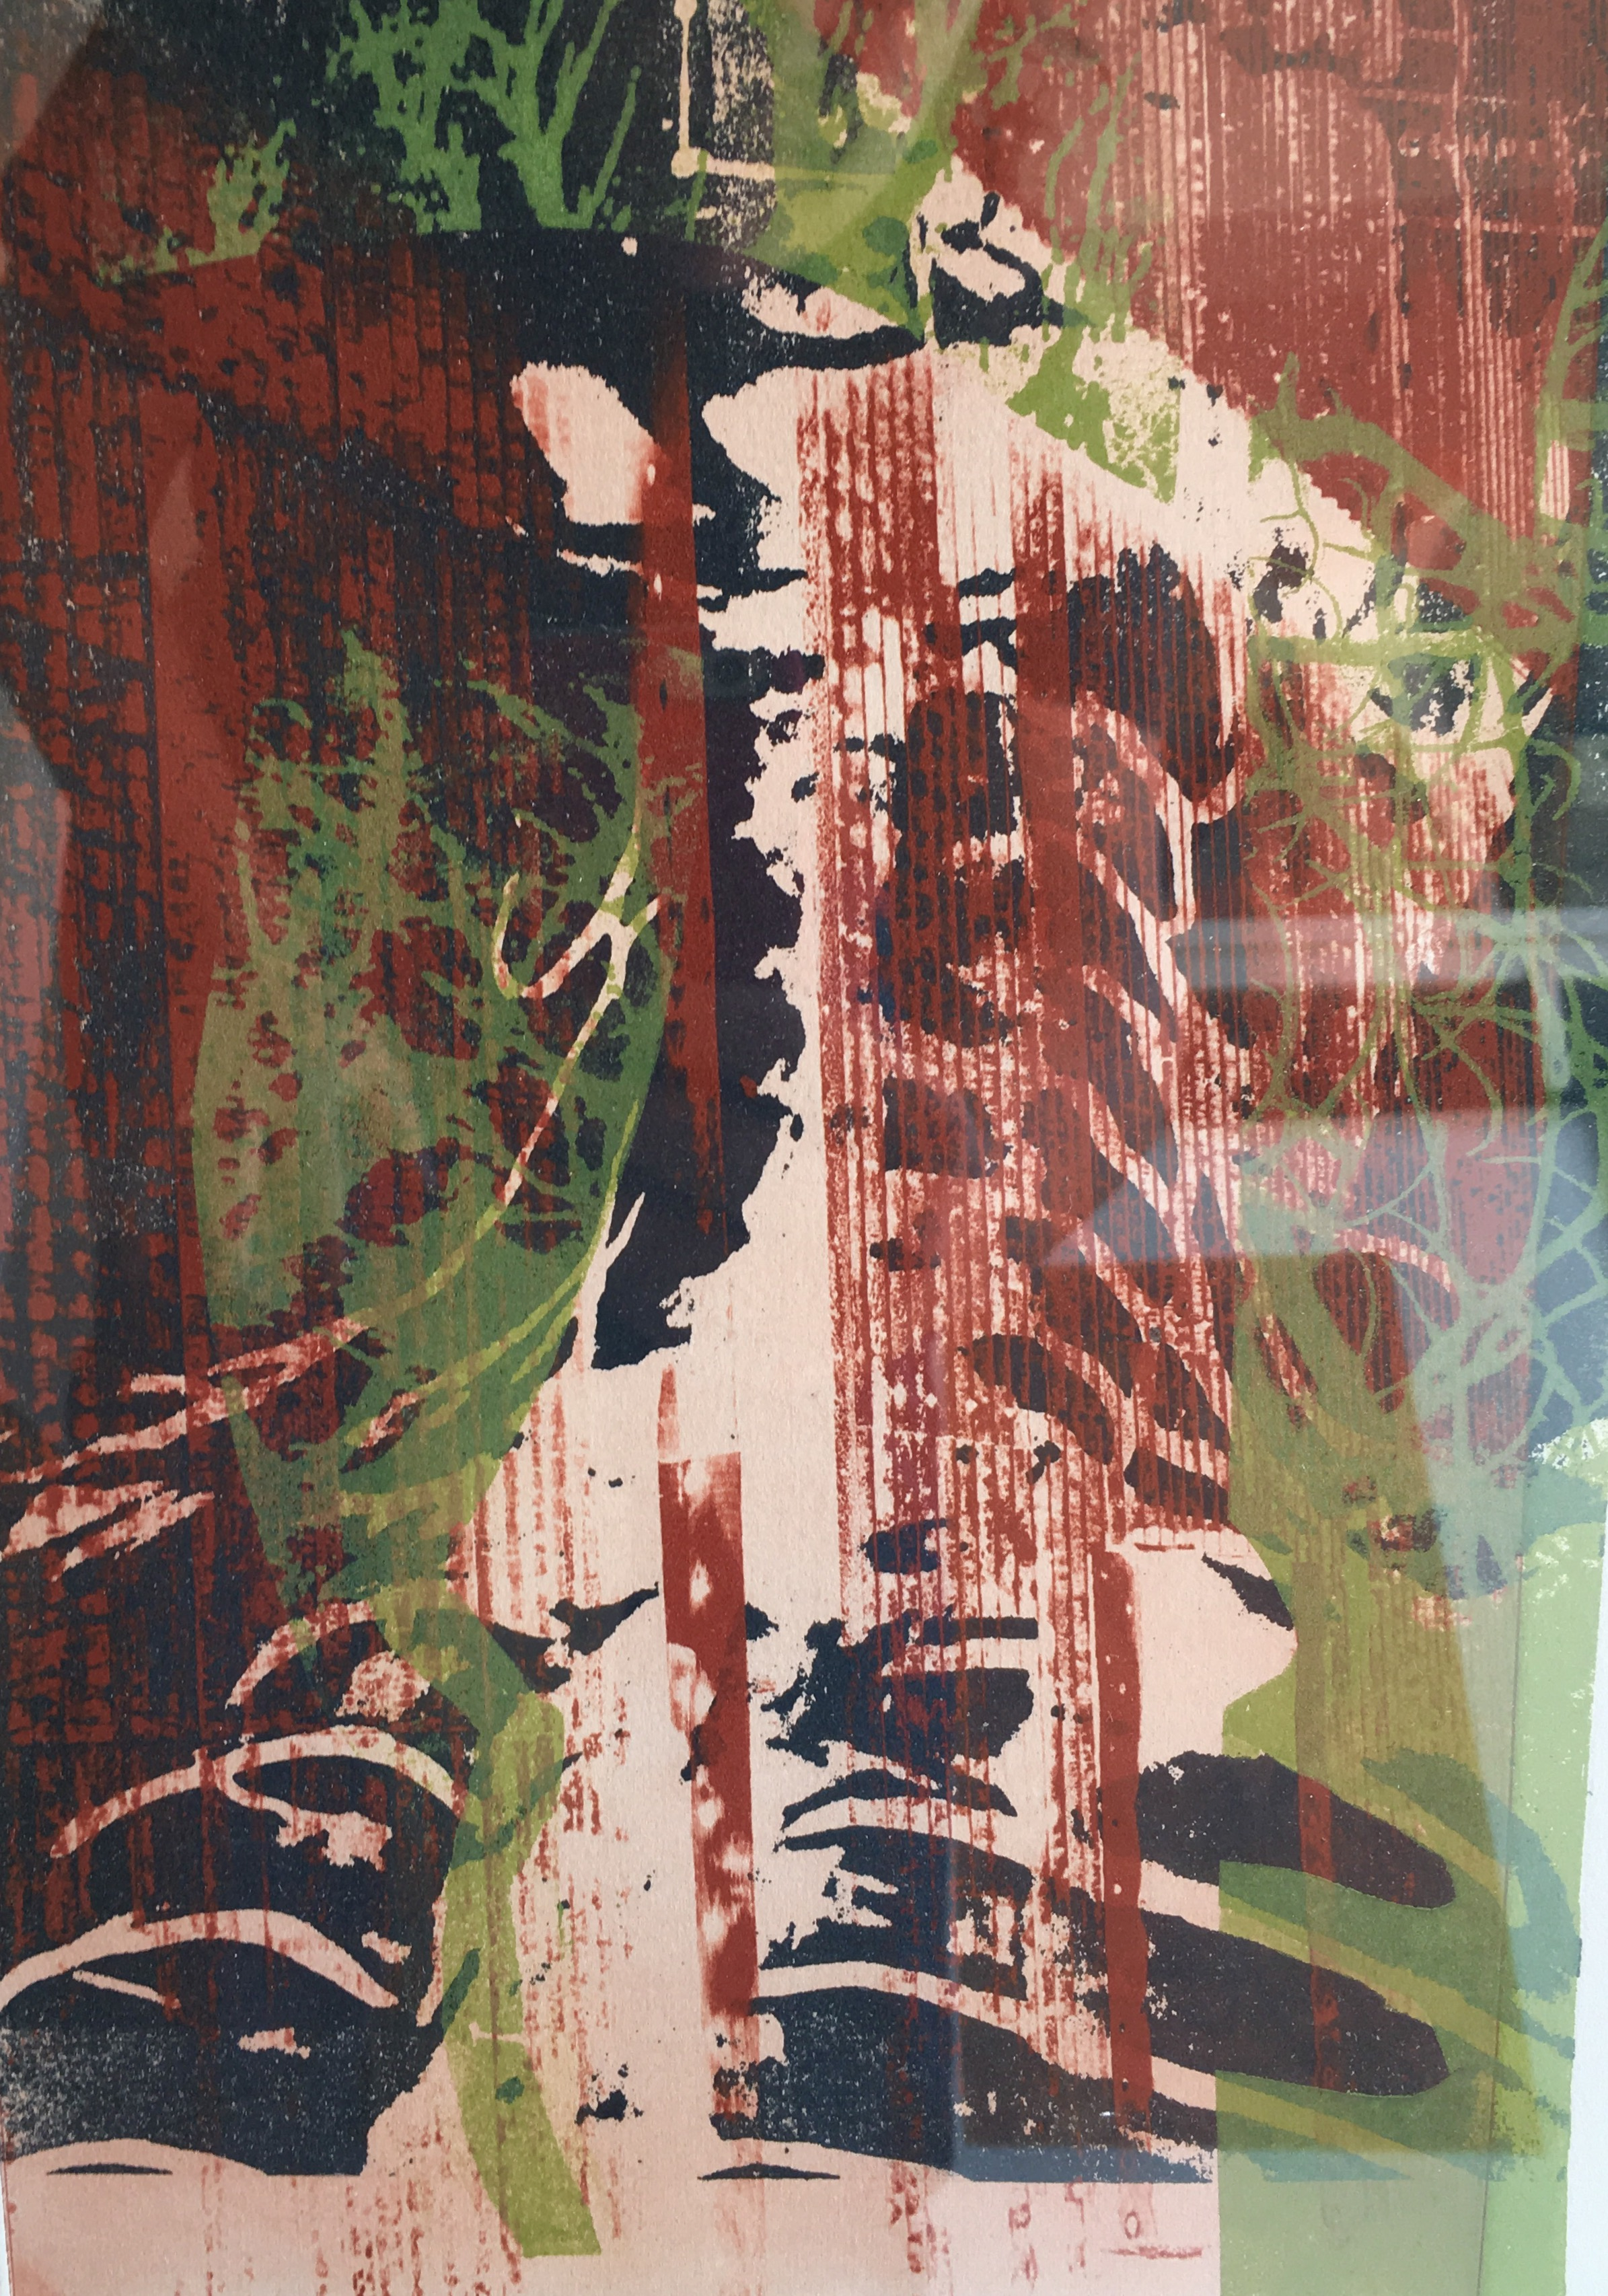 """Noel Harvey   """"Pains Grey Brain Stem, Rust Slats and Green Branches"""" 2010. Solar Plate Monotype. 11 x 15"""""""